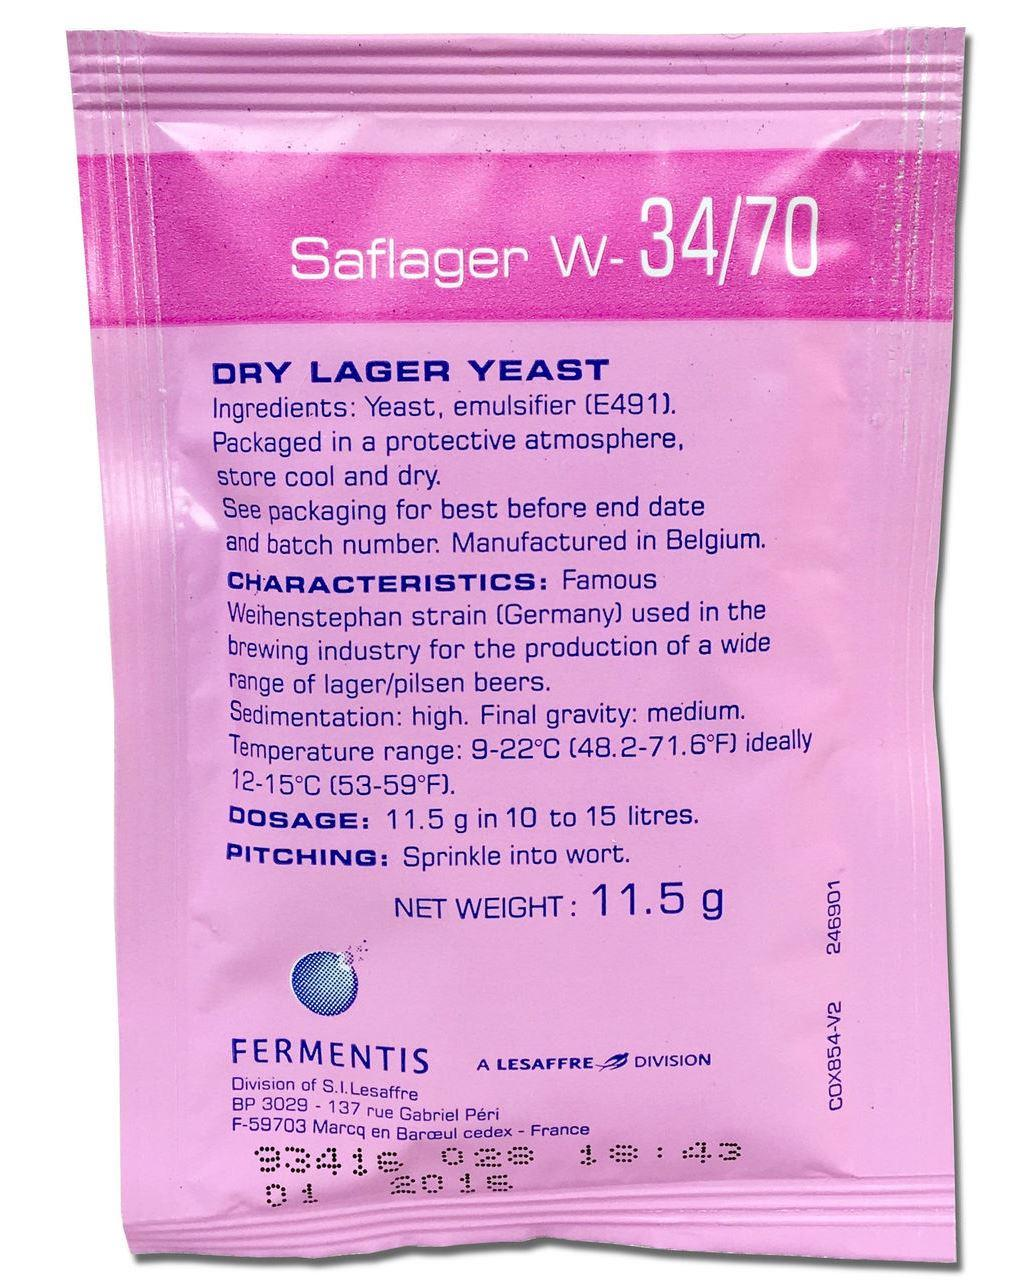 Fermentis Saflager W-34/70 Yeast - 11.5 g - Almost Off Grid